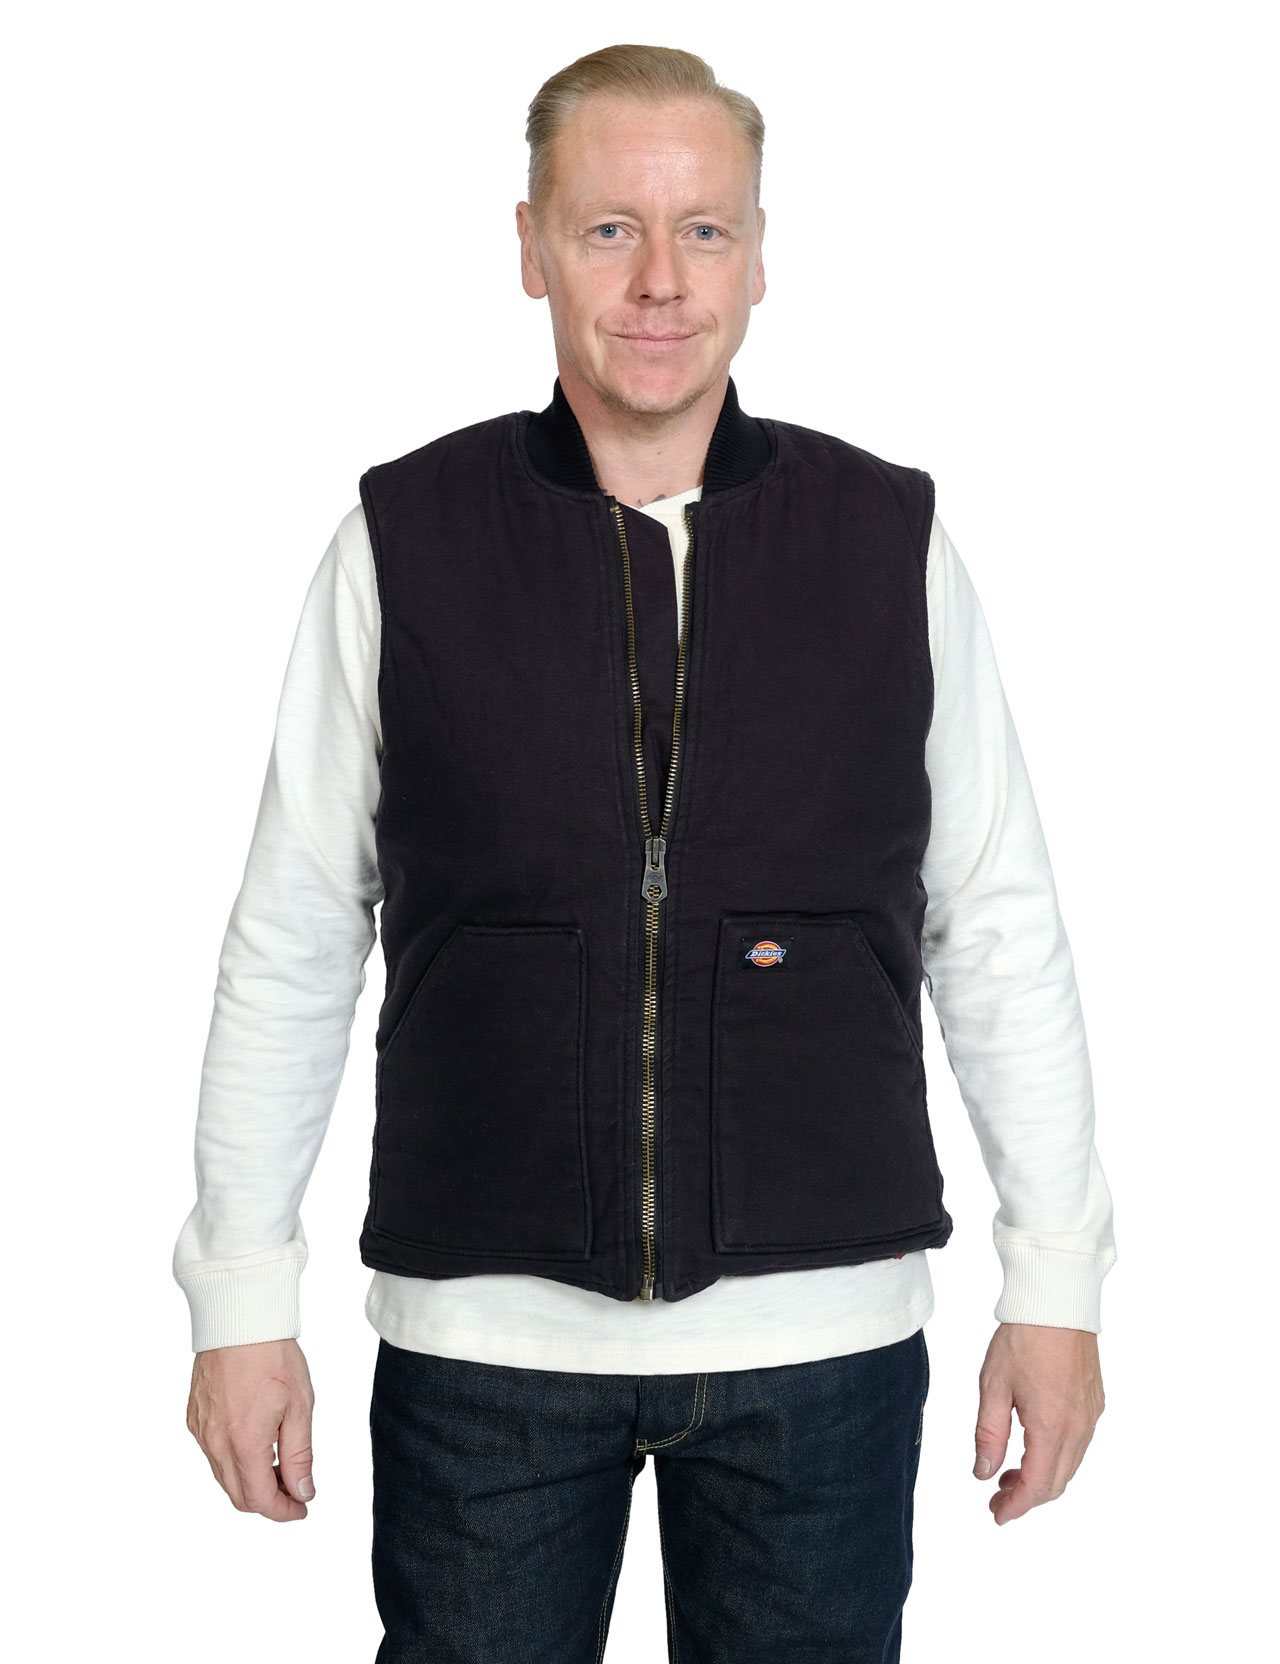 Dickies - Lawrenceburg Vest - Black